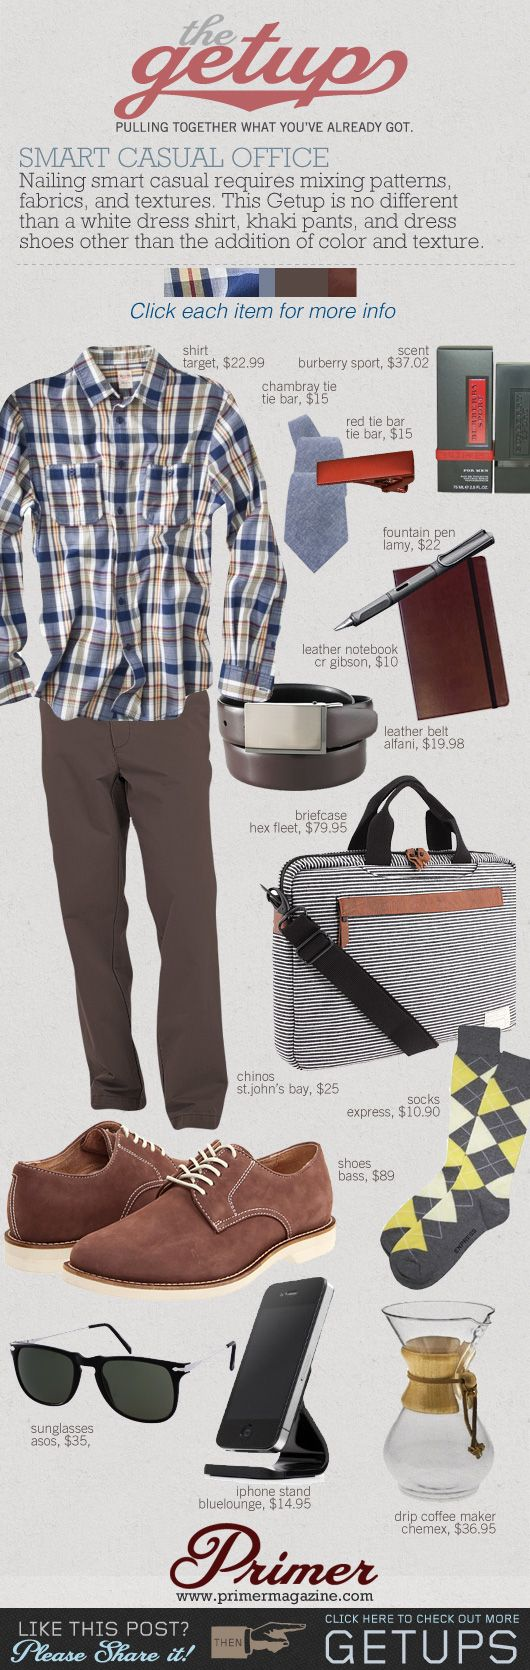 The Getup: Smart Casual Office - This site is pretty rad and has some good sensible style advice (with pictures).